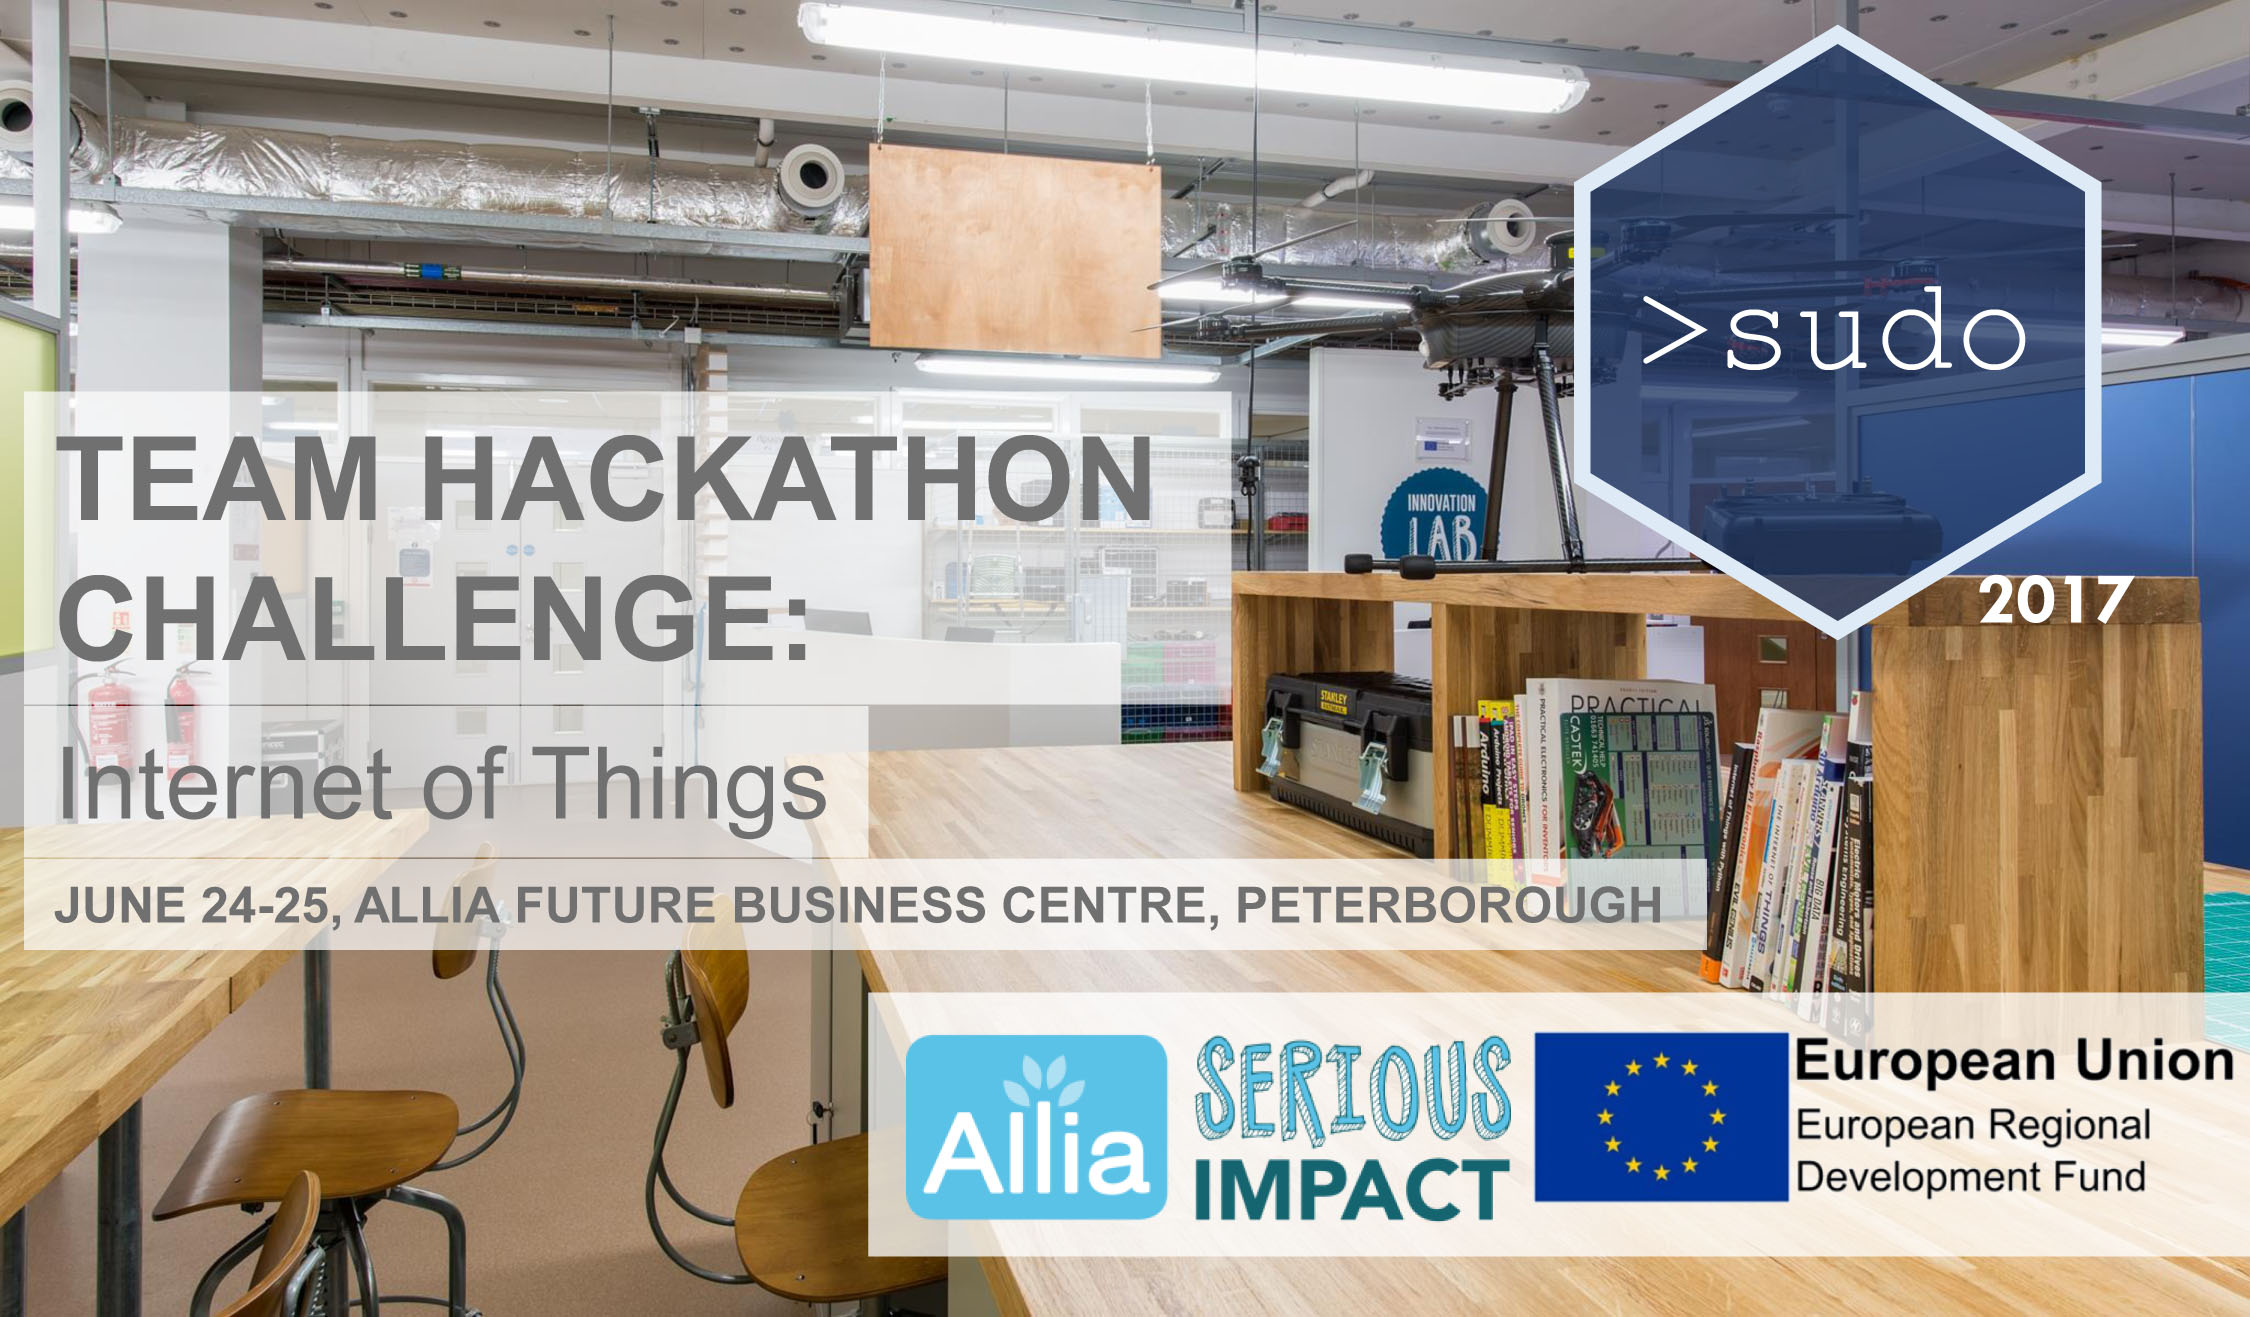 New Hackathon team challenge with Social Impact